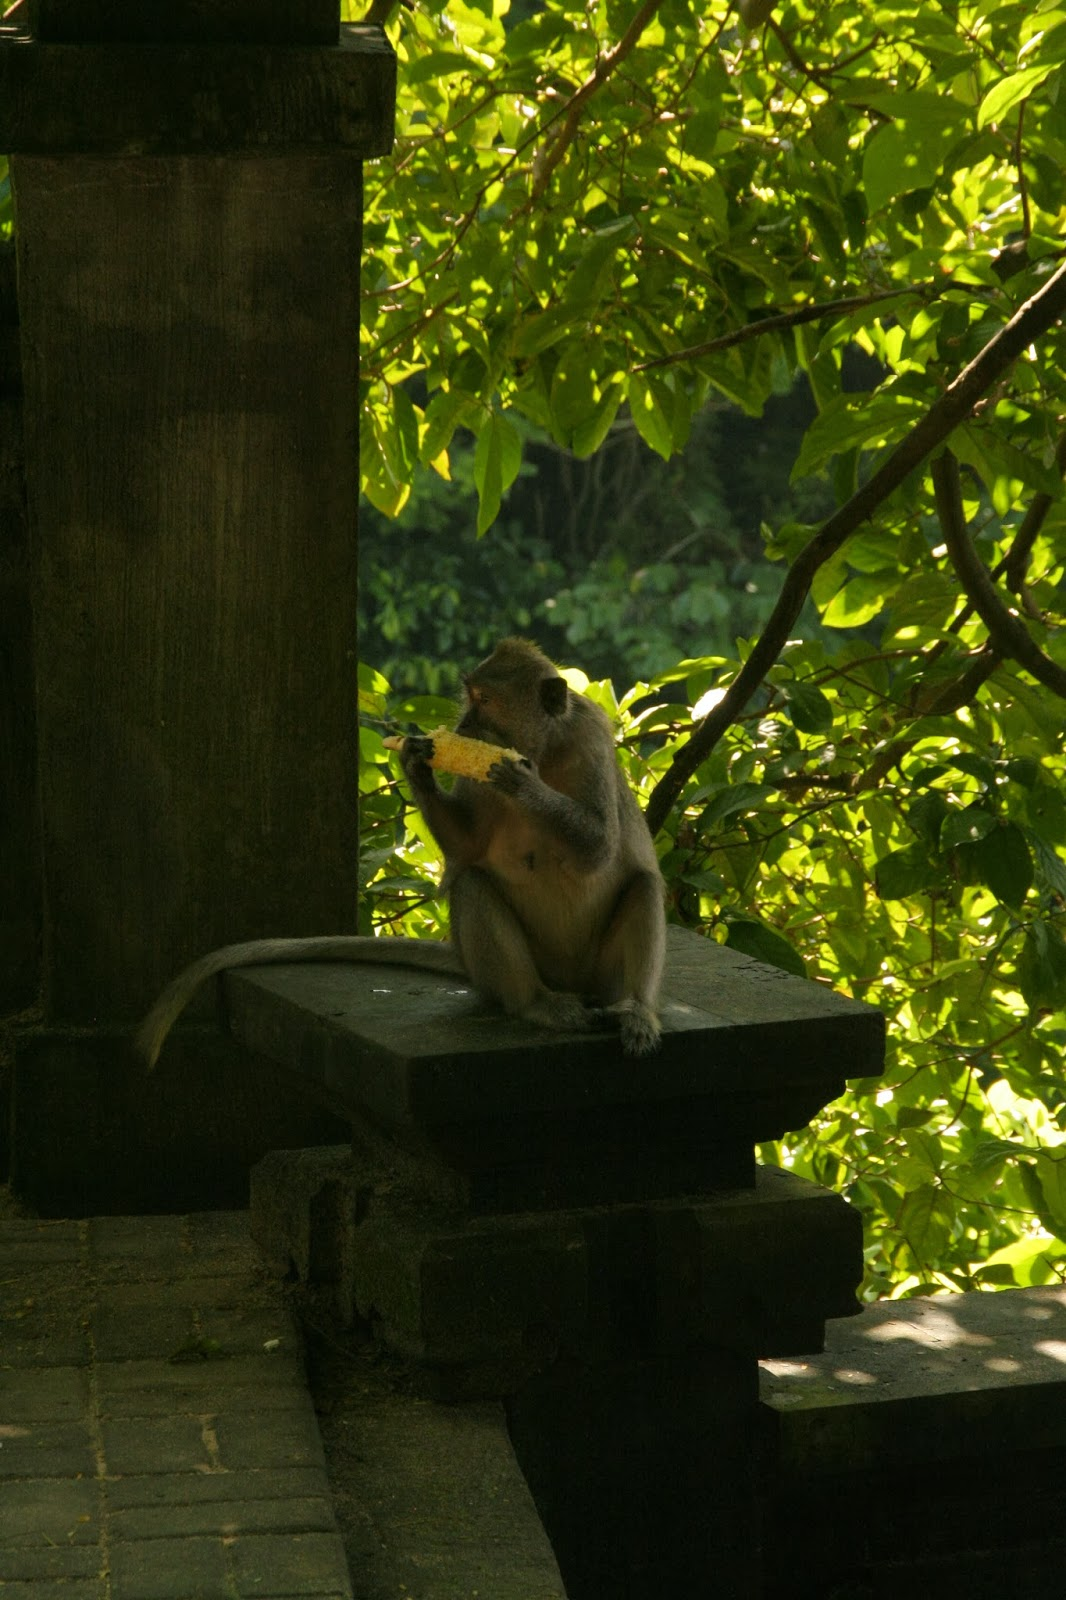 Monkey at Padang Padang